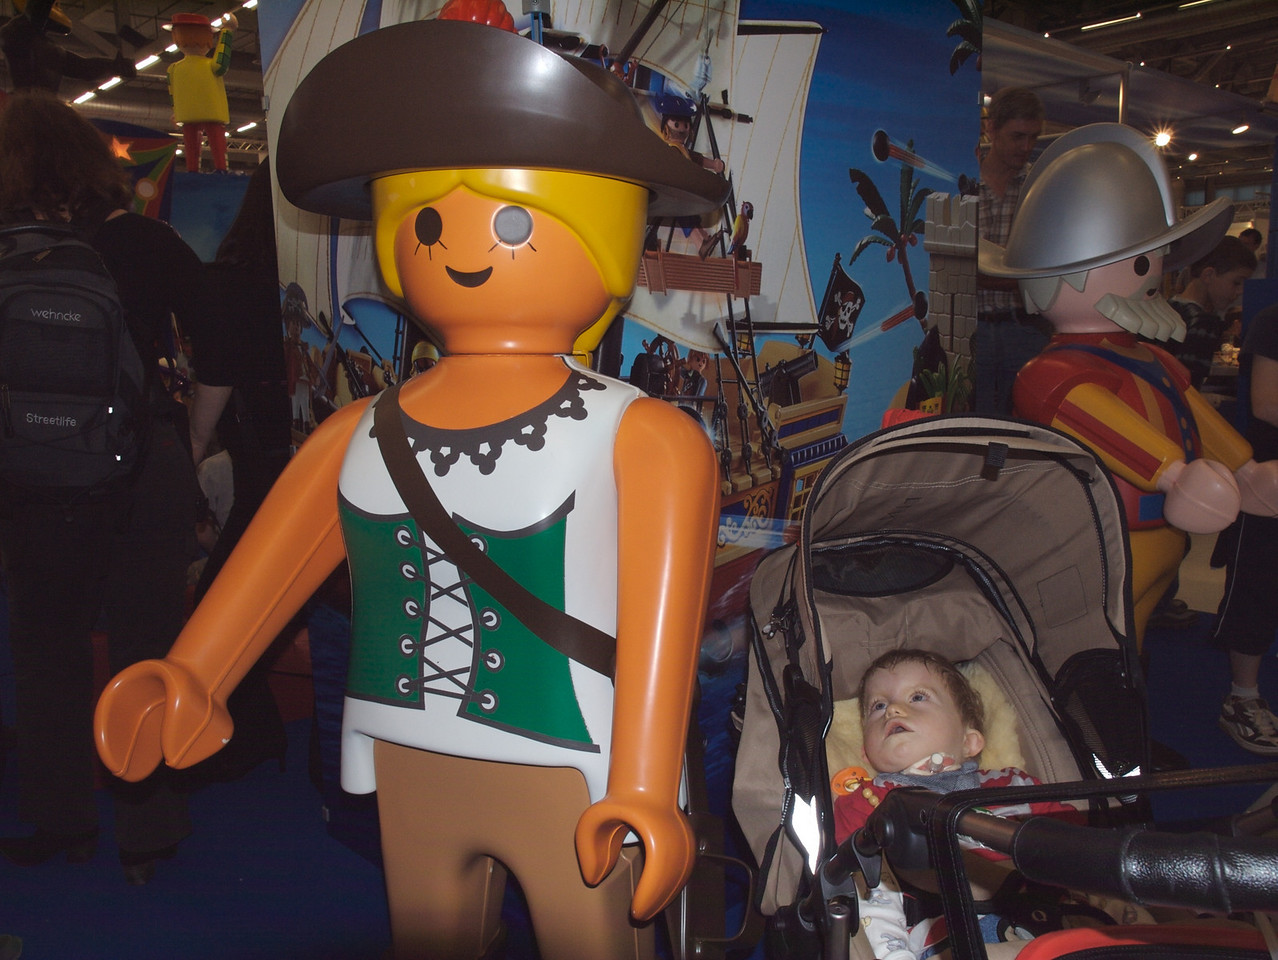 Sunday 7th oct 2007 - Cai is not sure quite what to make of playmobil women.